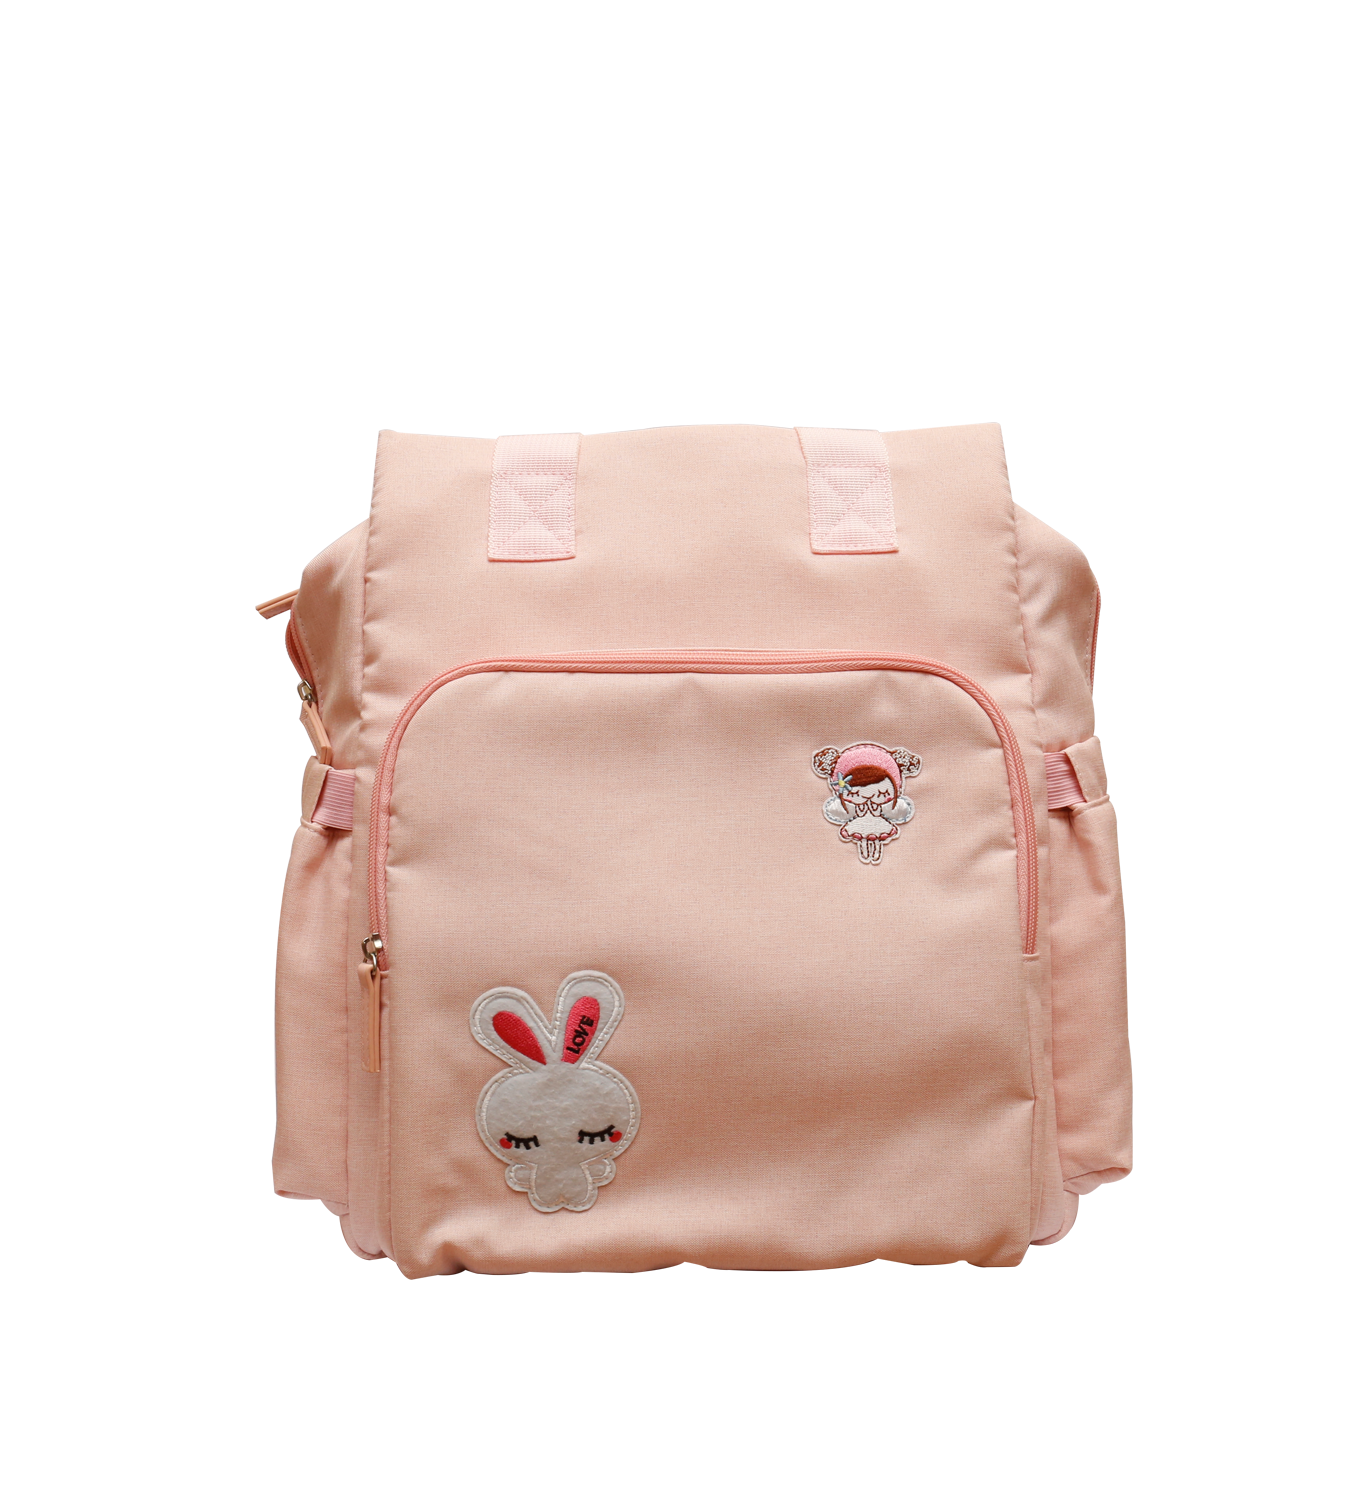 Mother and baby bag